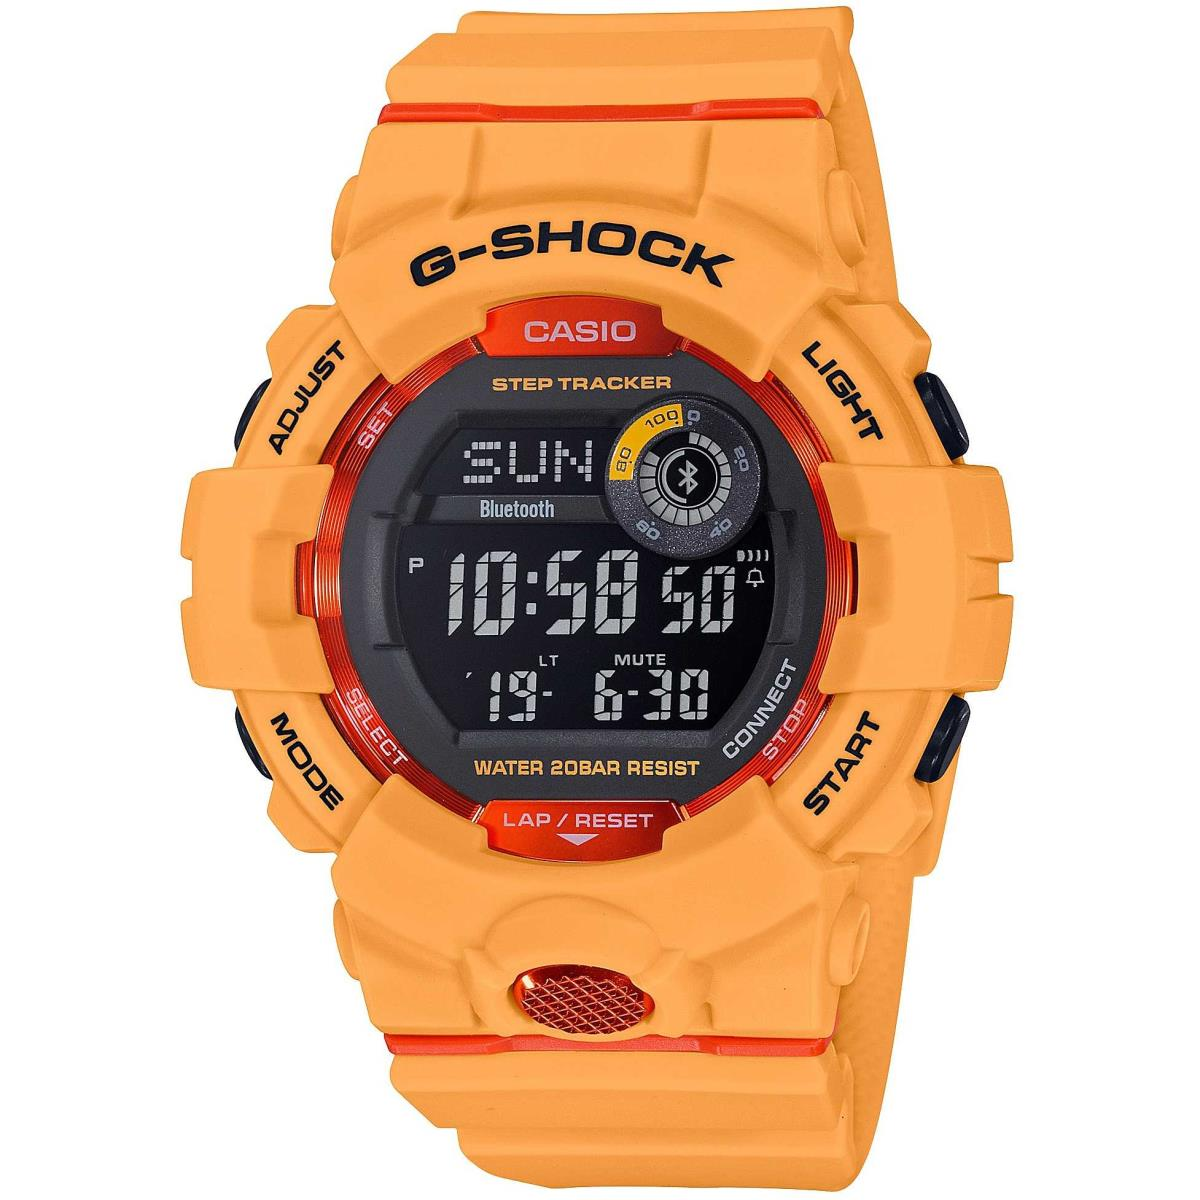 CASIO RUBBER WATCH ORANGE DIGITAL GBD-800-4ER